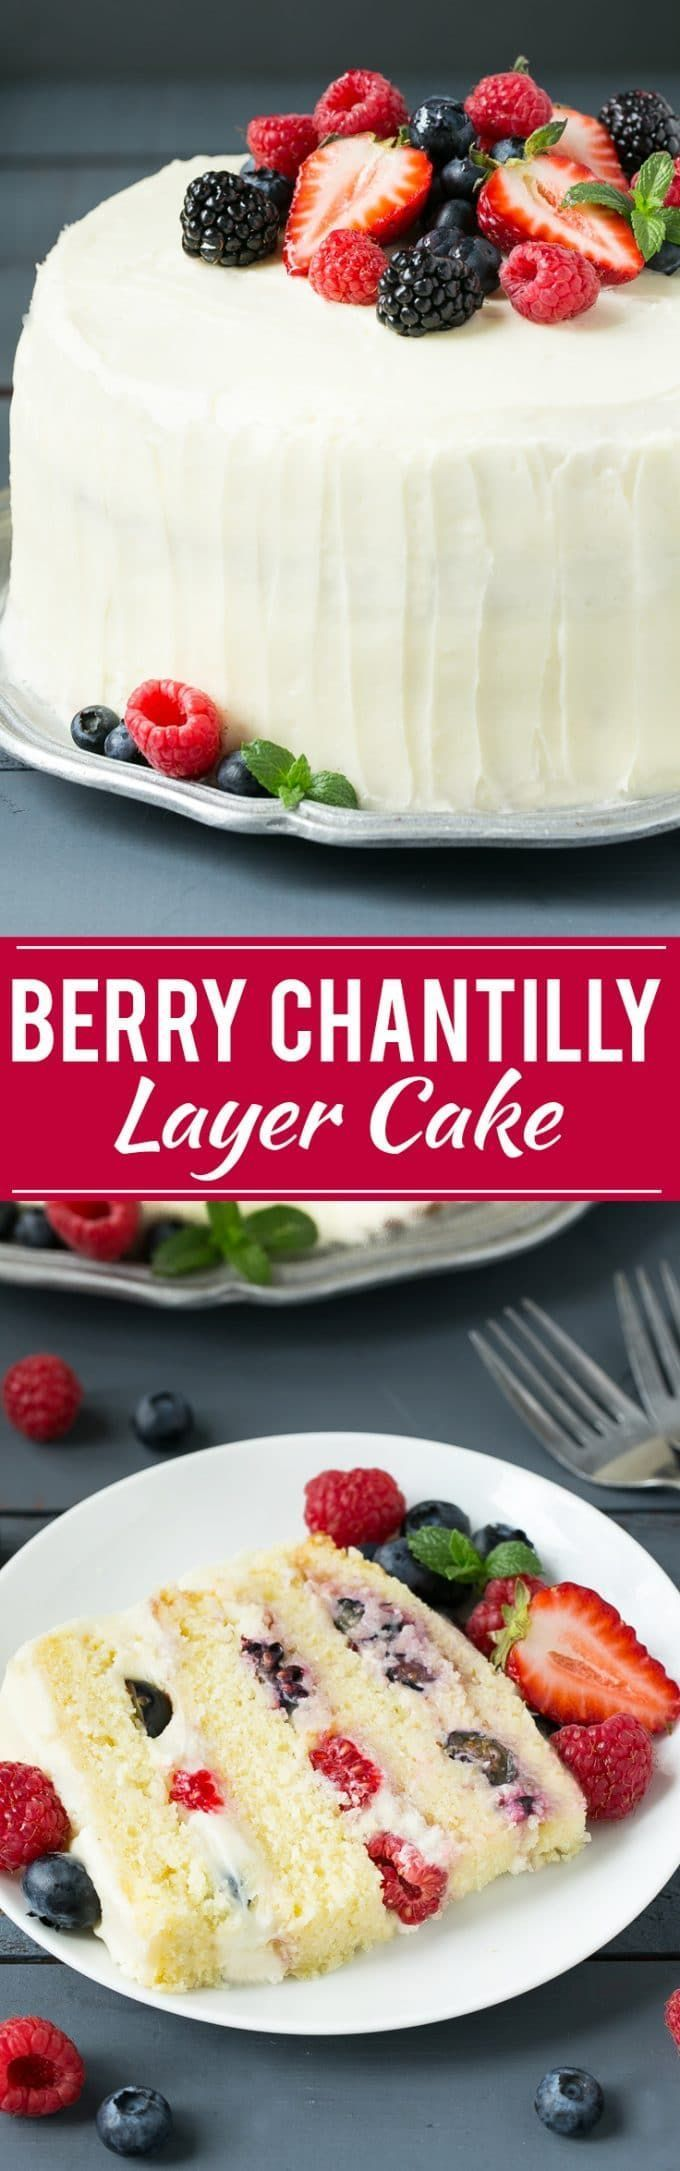 Berry Chantilly Cake OMG THIS IS IT!